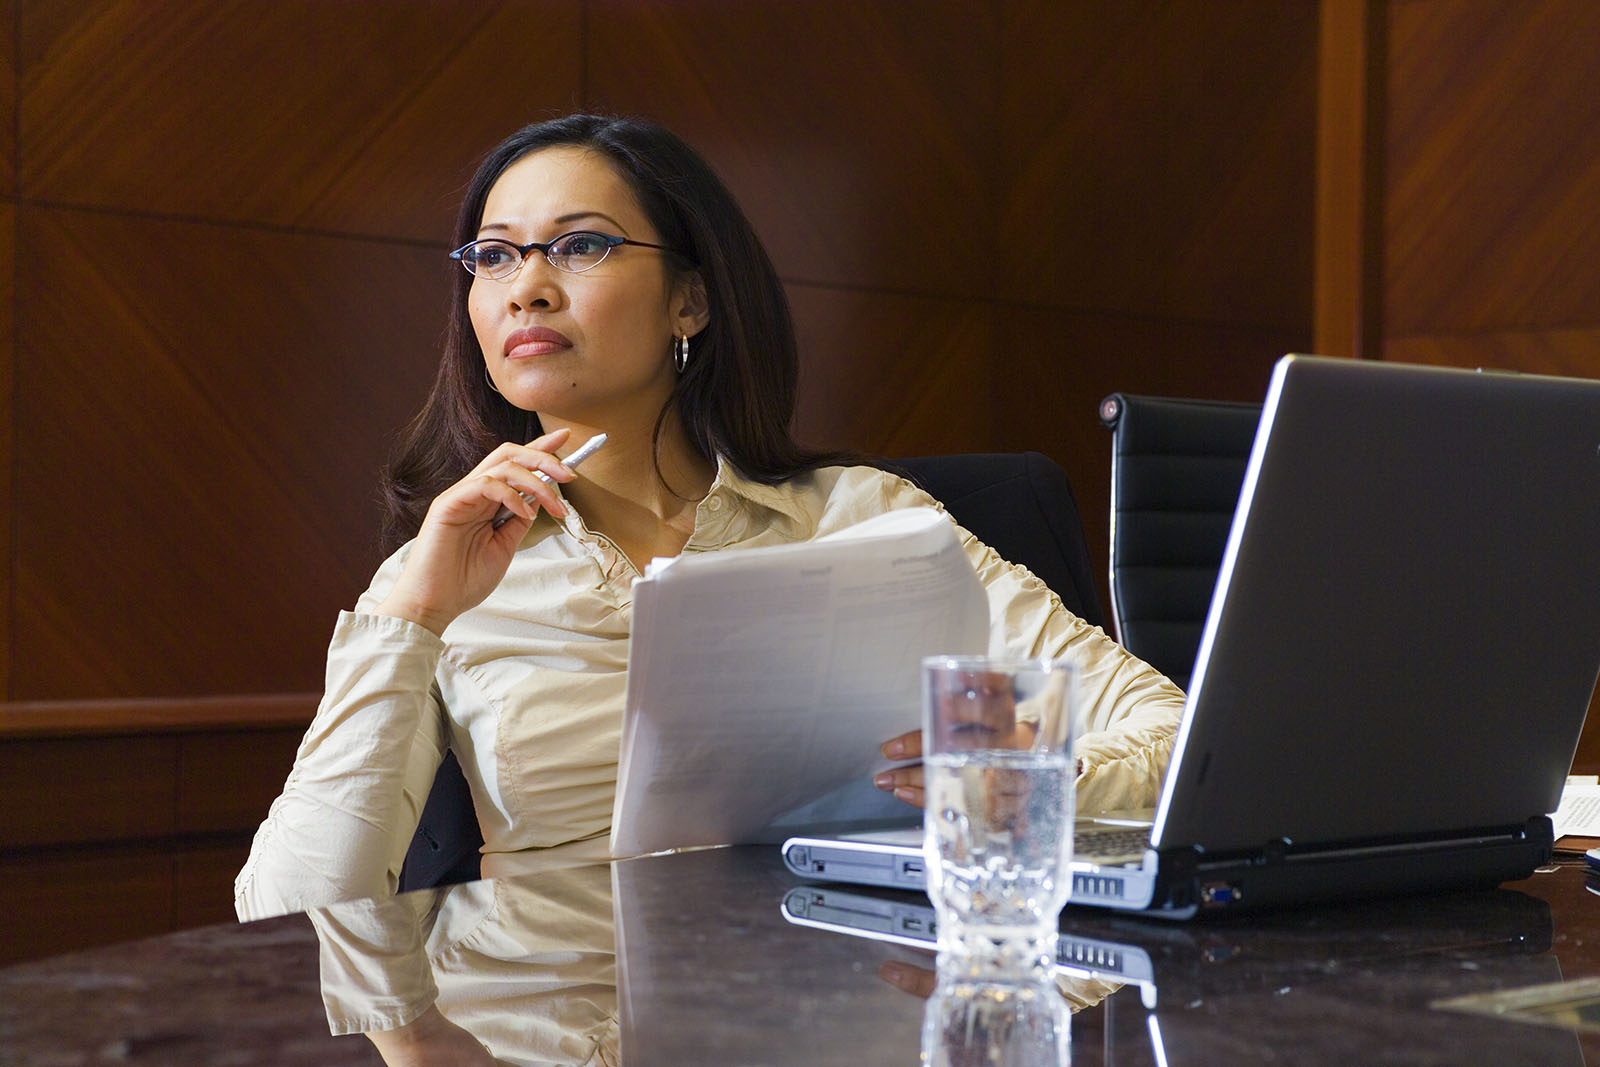 A businesswoman sitting in front of a laptop computer with pen and paper in hand.